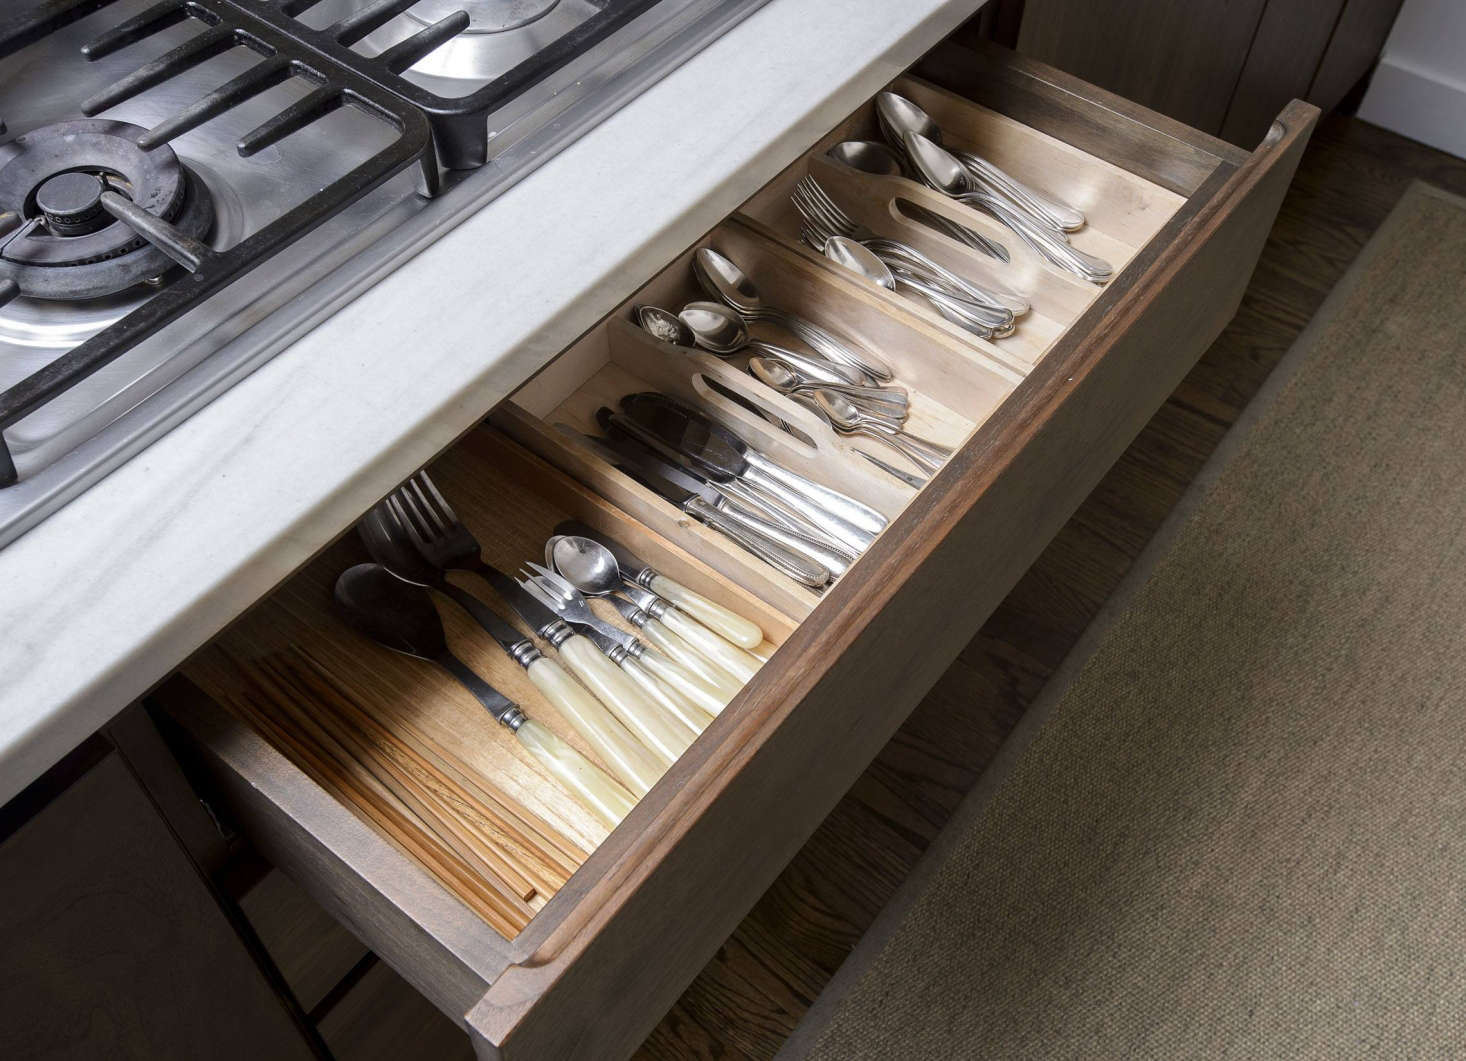 Makié organizes cutlery by type (chopsticks, resin handle flatware, and vintage silver) and size in a drawer beneath the Miele 30-Inch Gas Cooktop. Hidden behind a walnut panel is a Miele Fully Integrated Dishwasher.